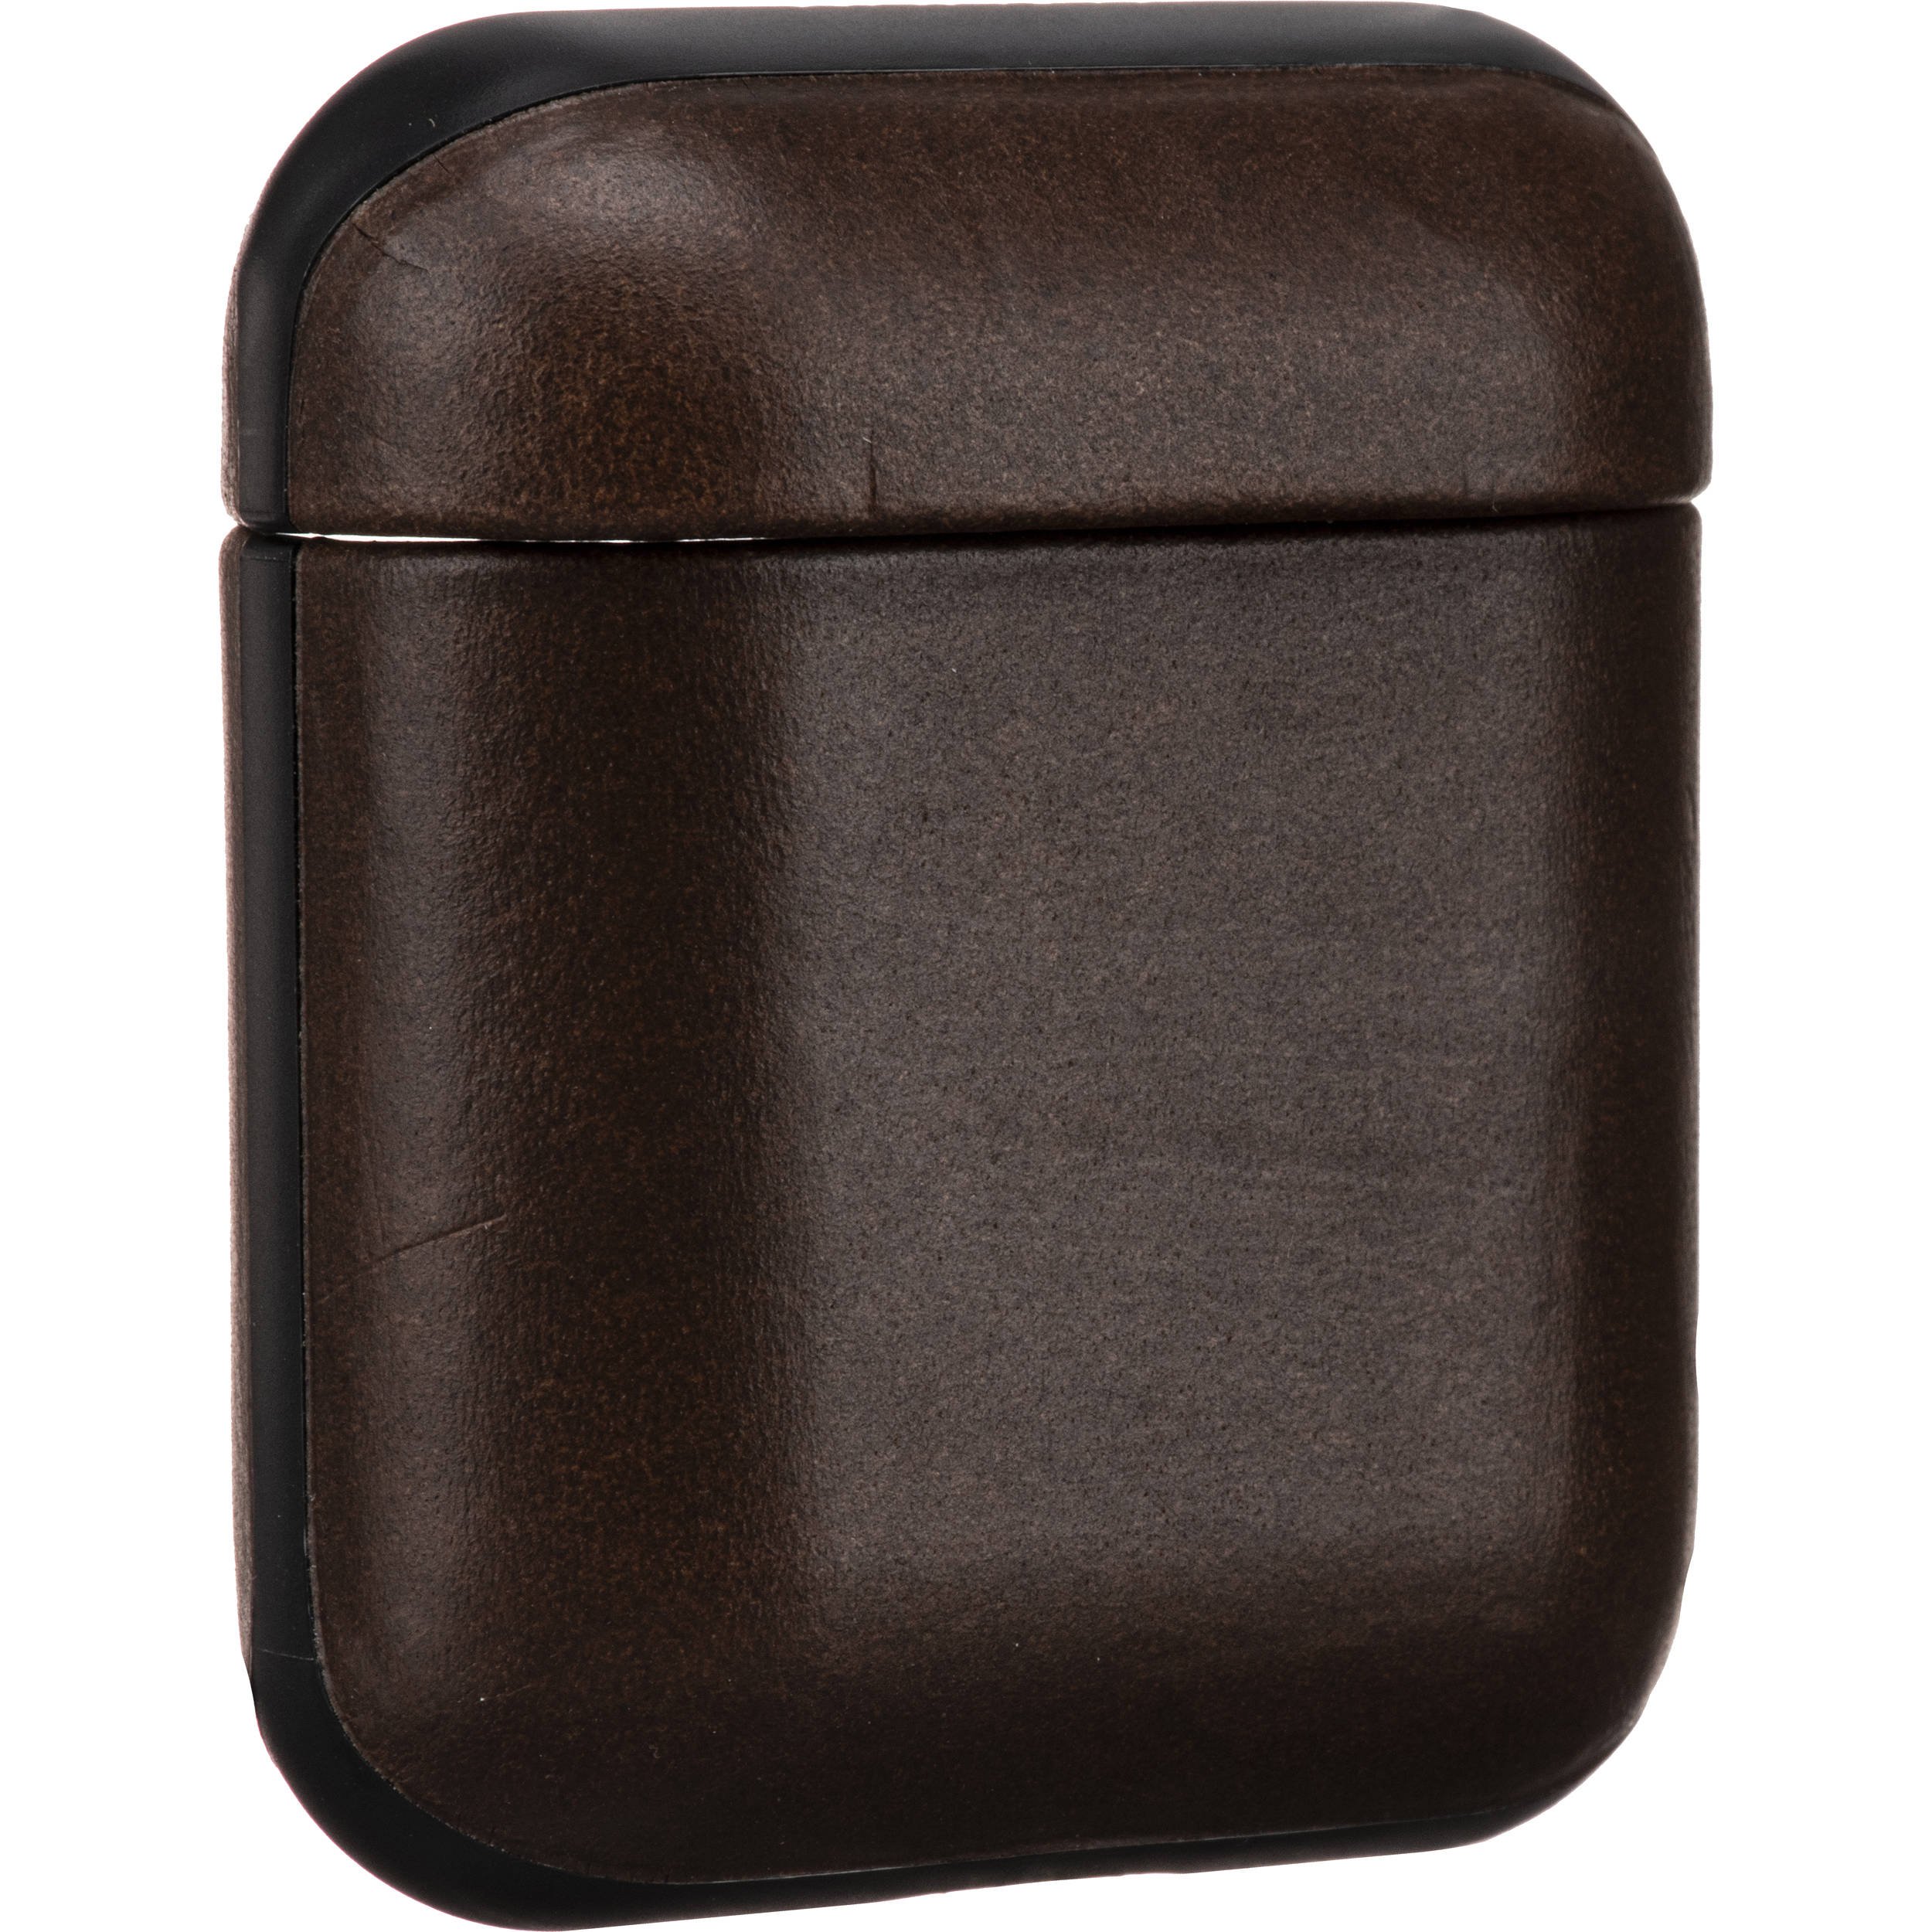 huge discount 989a0 91744 Nomad Rugged Case for AirPods (Rustic Brown)